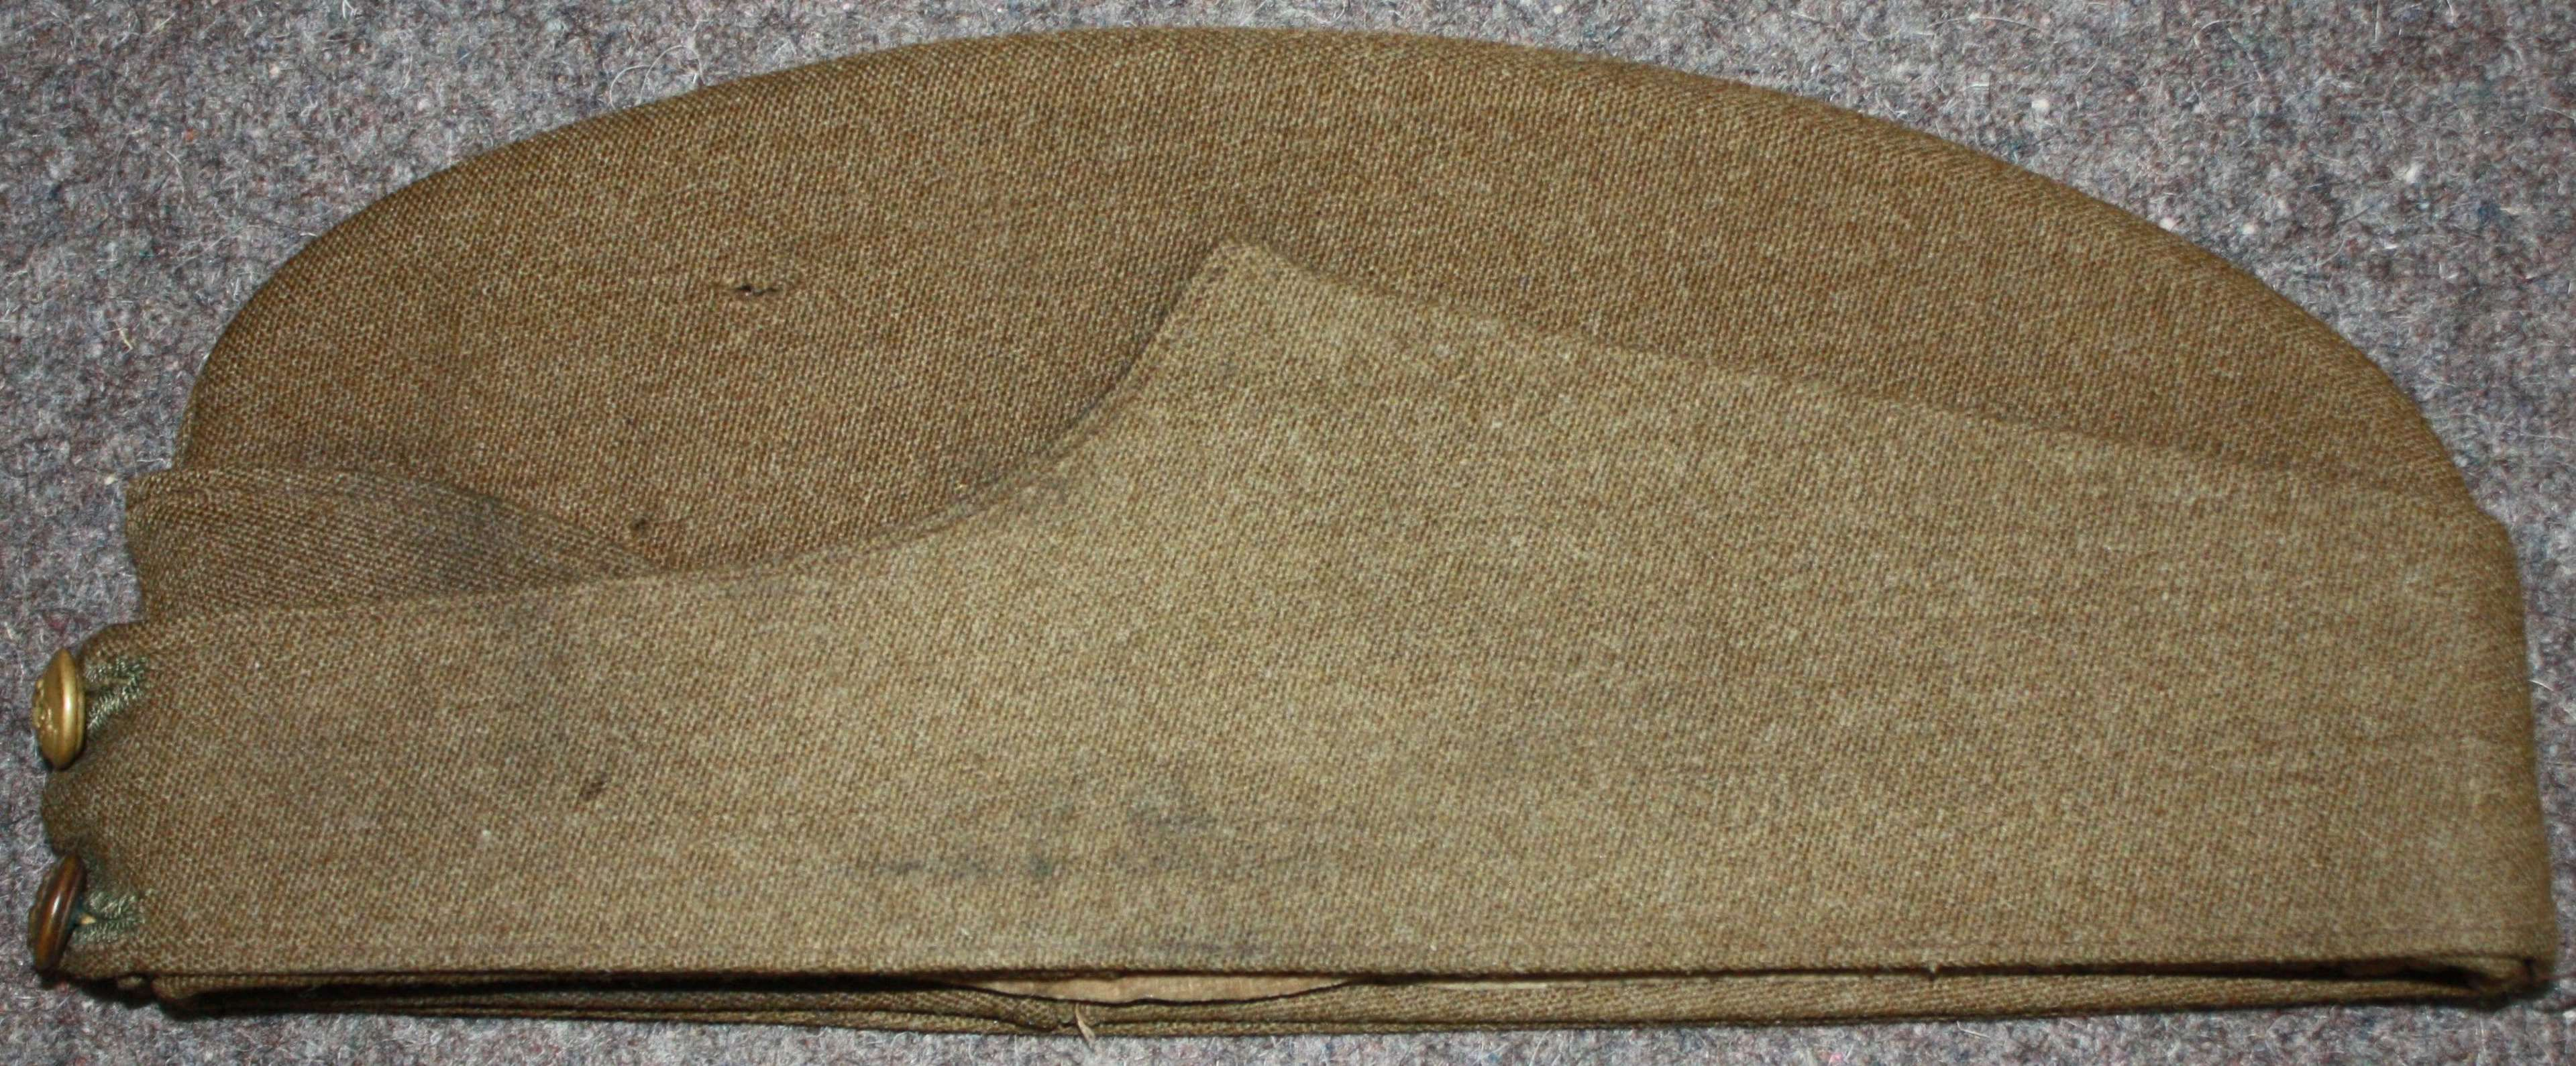 A WWII OFFICERS SIDE CAP